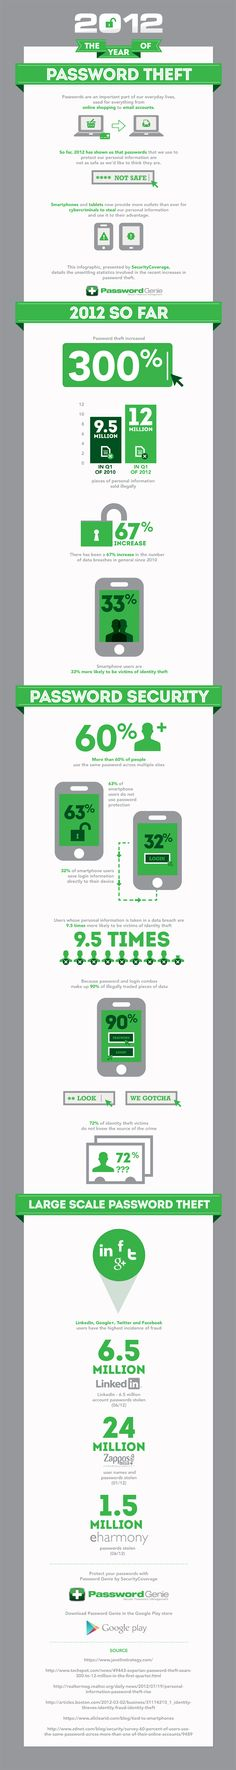 2012: The year of the Password Theft Infographic